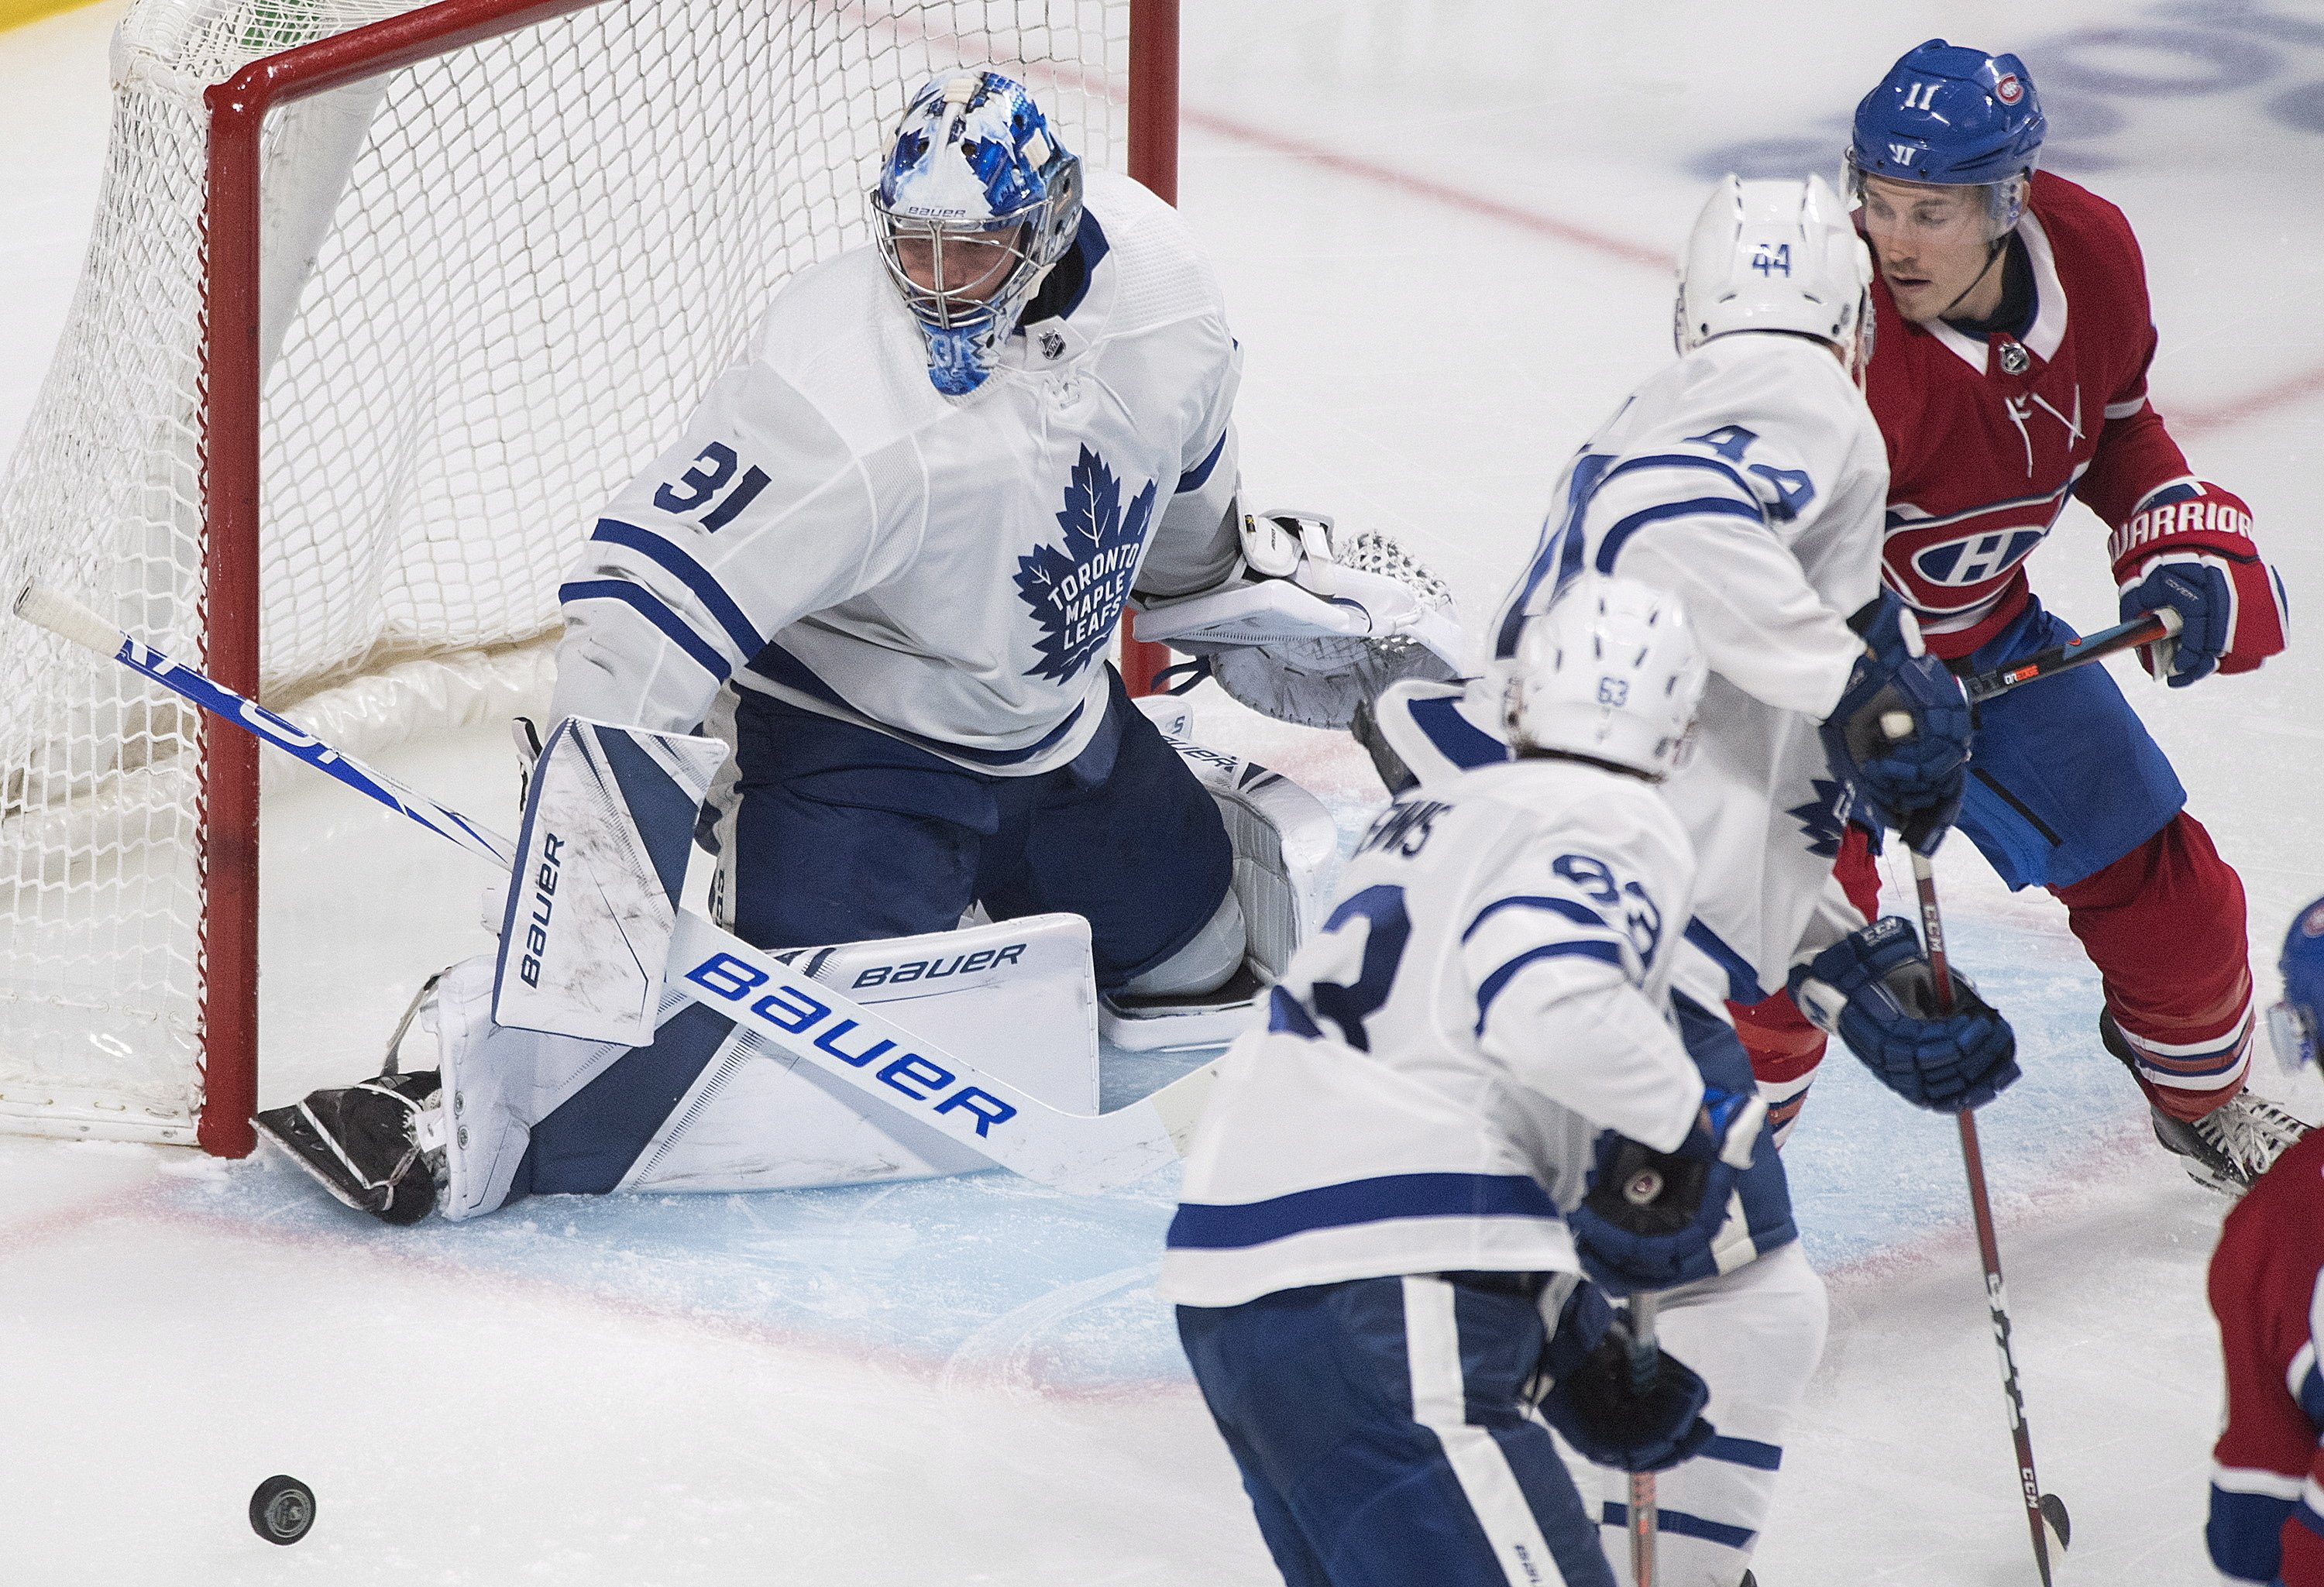 Nhl Goalie Equipment Continues To Shrink Premium On Scoring